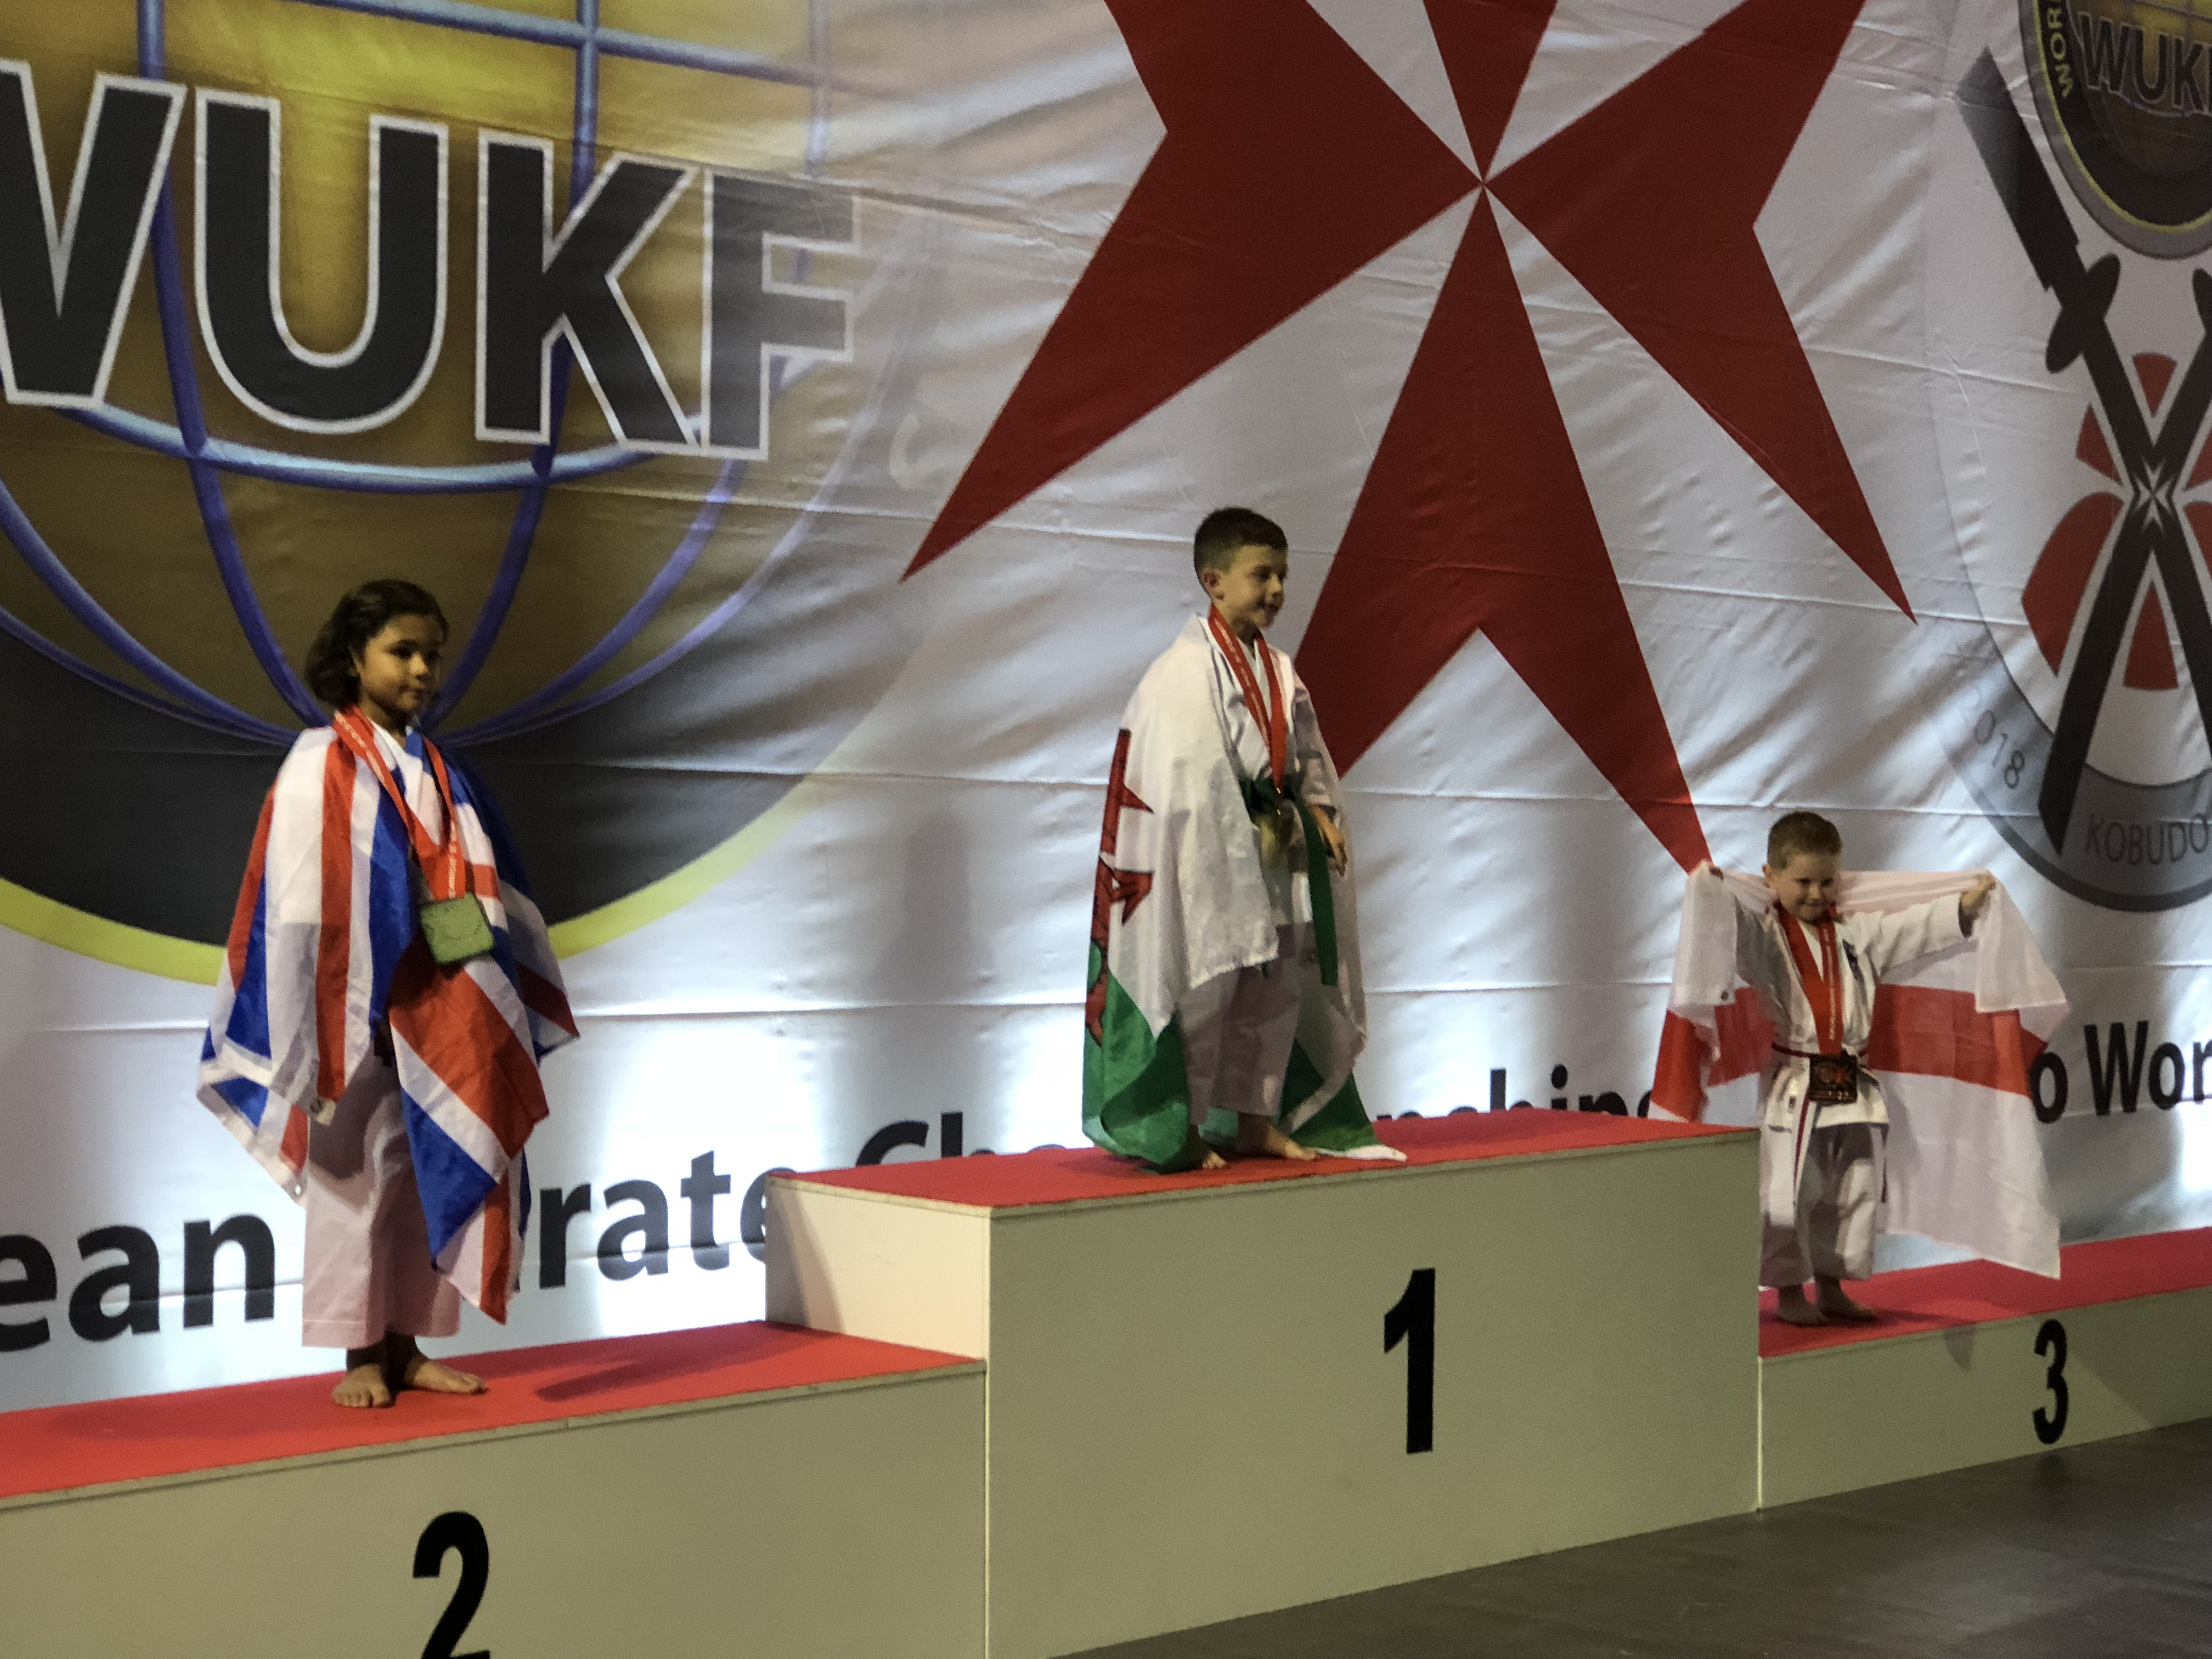 JAKOB BARTUSH  - WUKF European Champion 2018